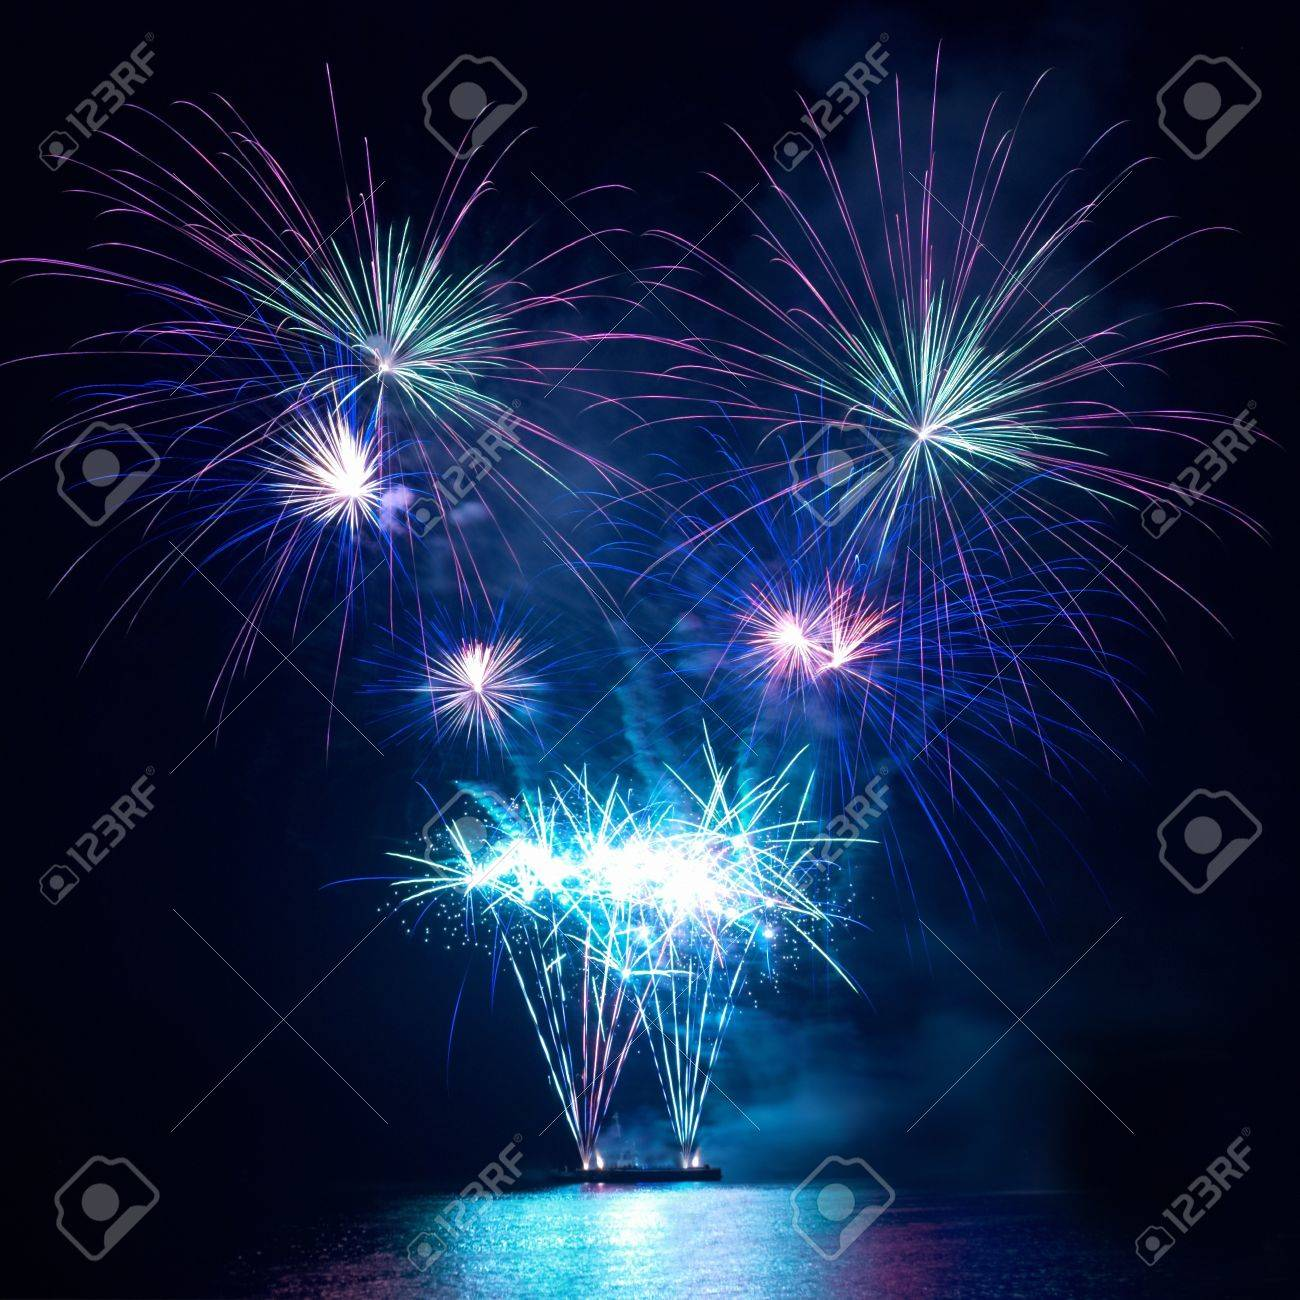 Colorful fireworks on the black sky background Stock Photo - 9586816